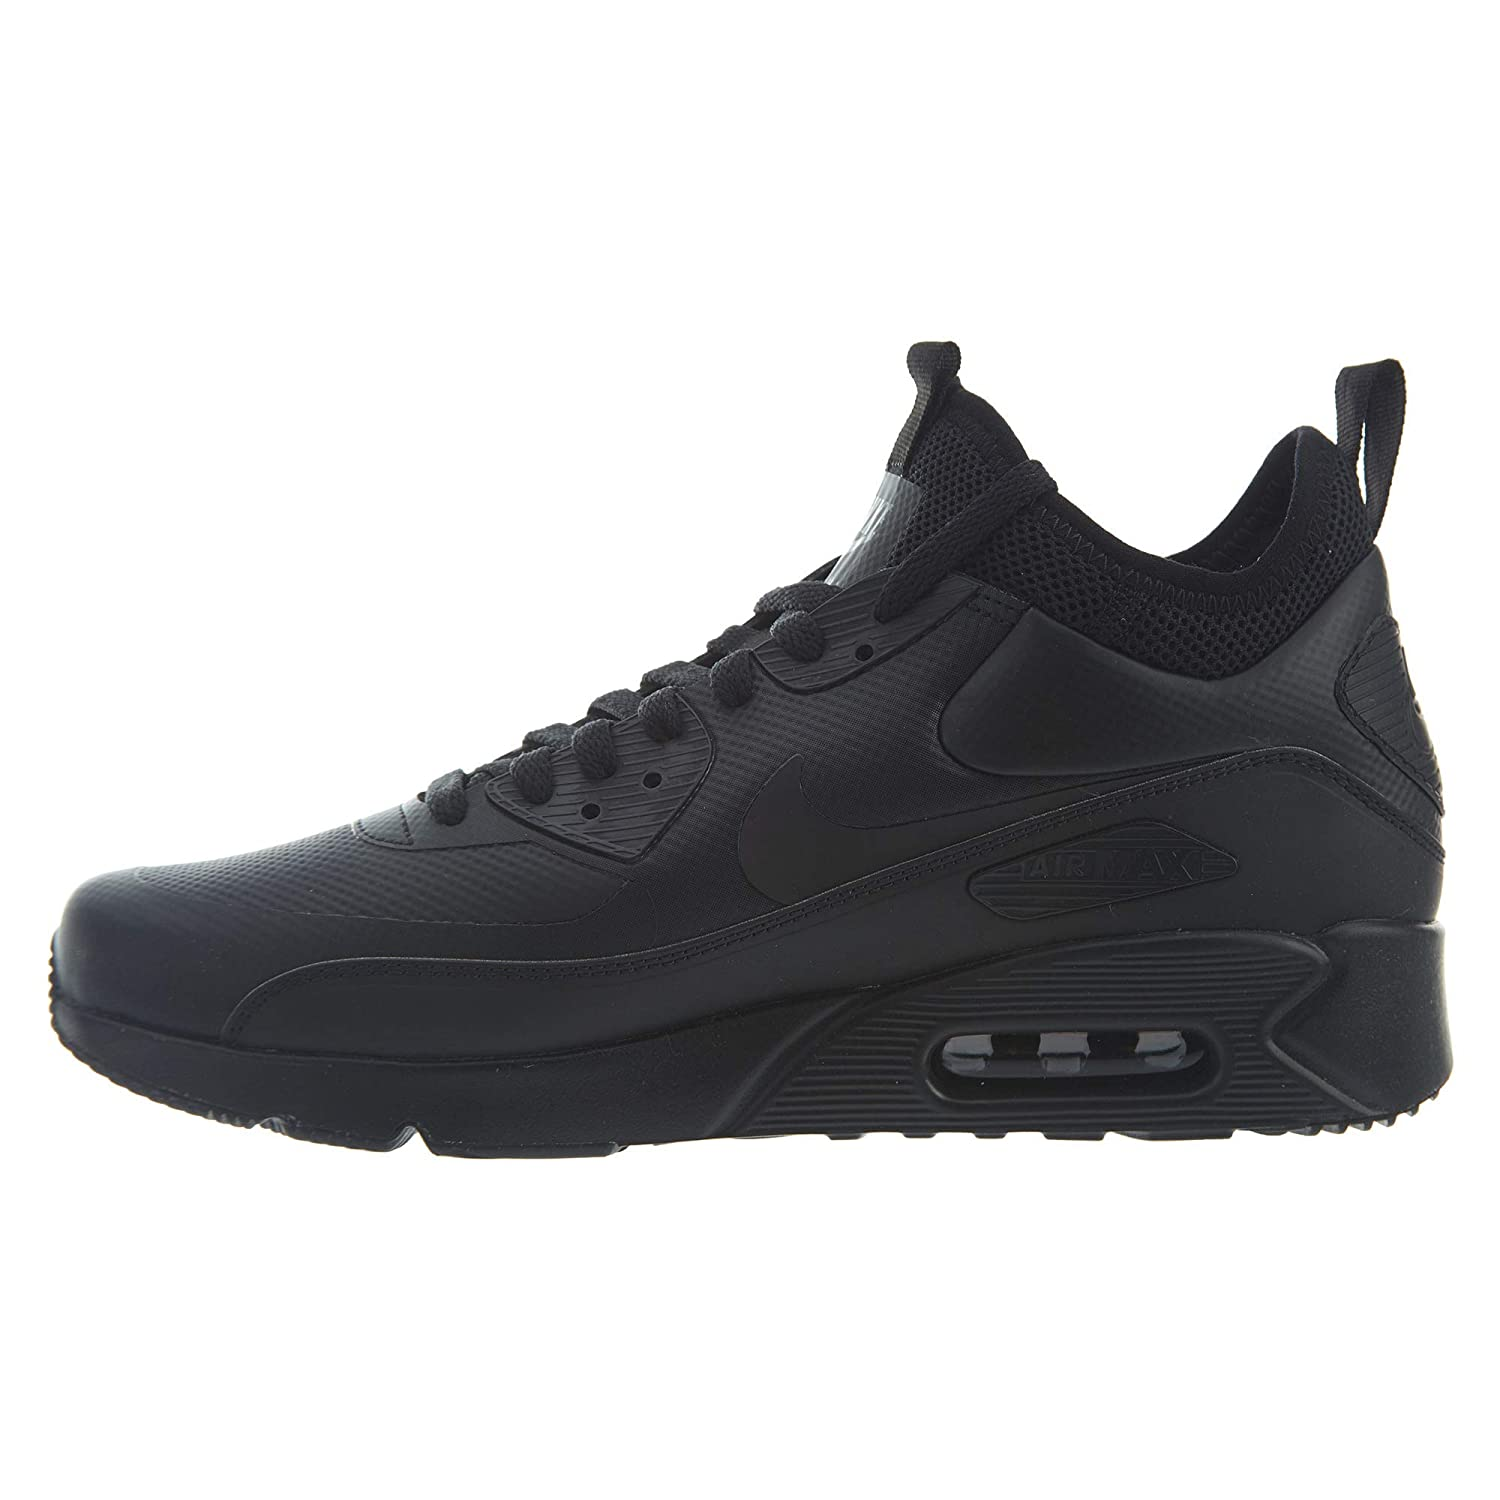 best website da70c 91605 Nike AIR MAX 90 Ultra MID Winter Ankle Boots/Boots Men Black Mid Boots